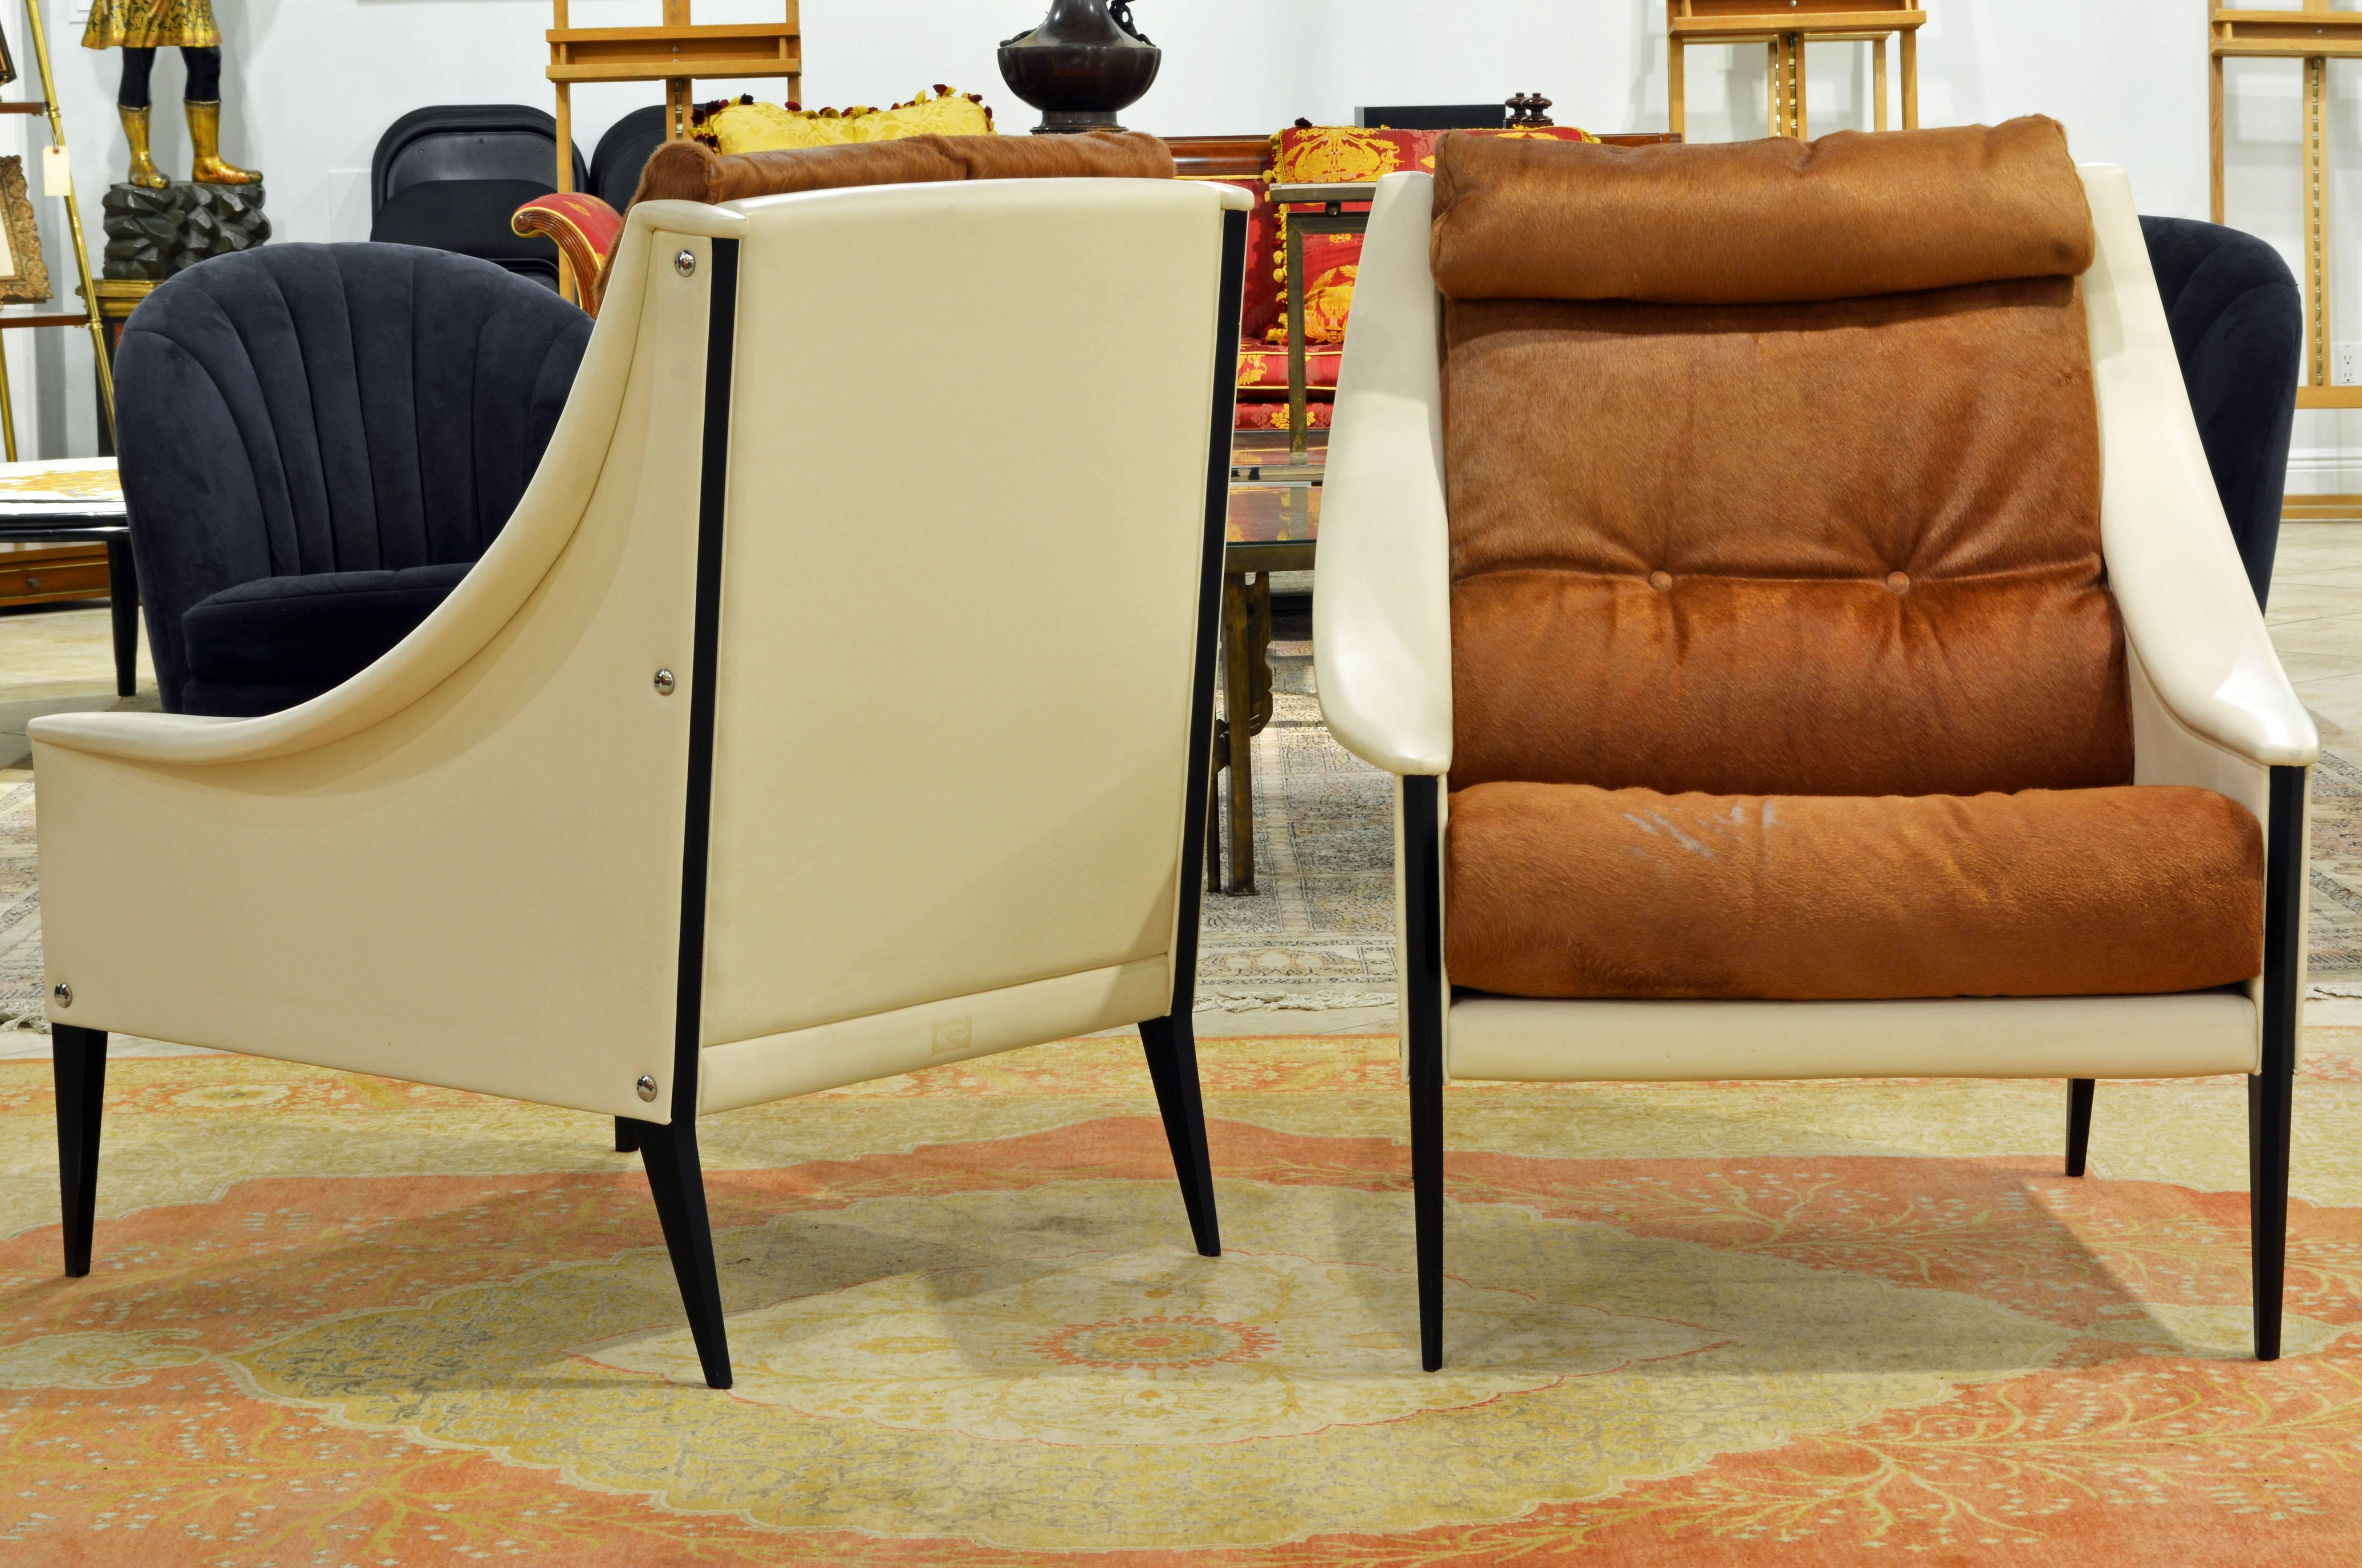 Modern Pair Of Poltrona Frau U0027Dezzau0027 Leather And Cow Hide Lounge Chairs By  Gio